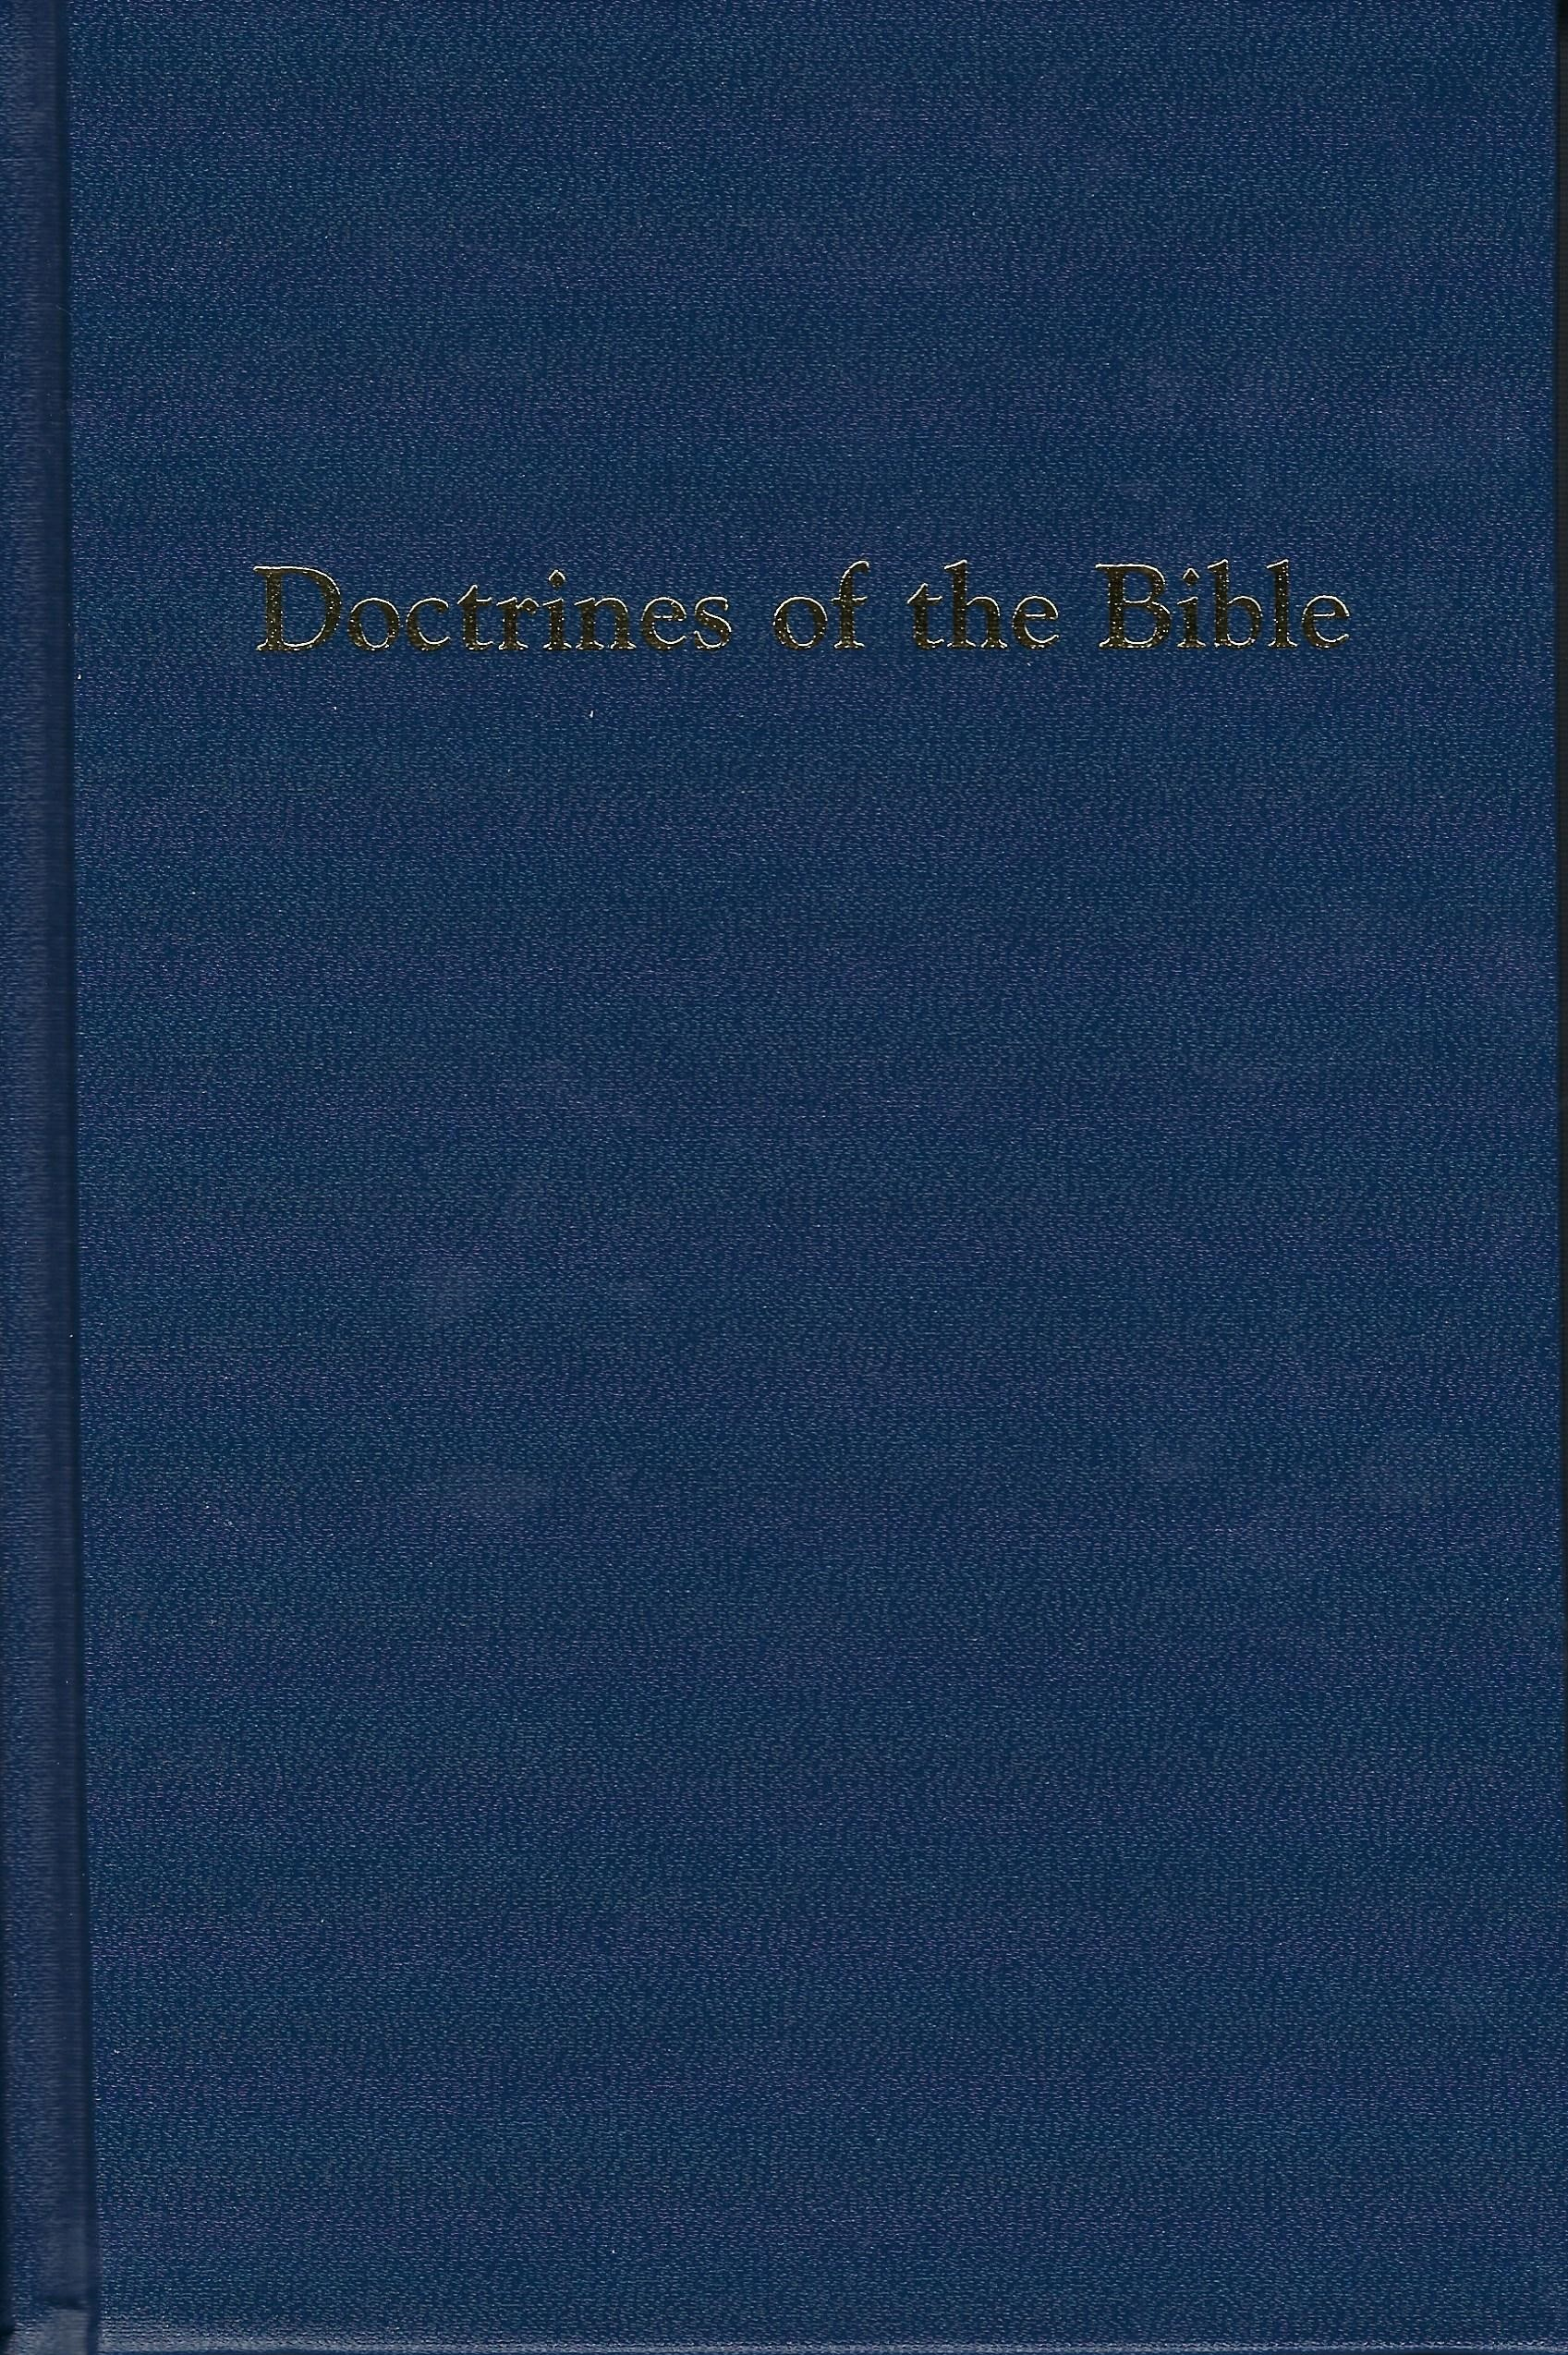 DOCTRINES OF THE BIBLE Daniel Kauffman, Editor